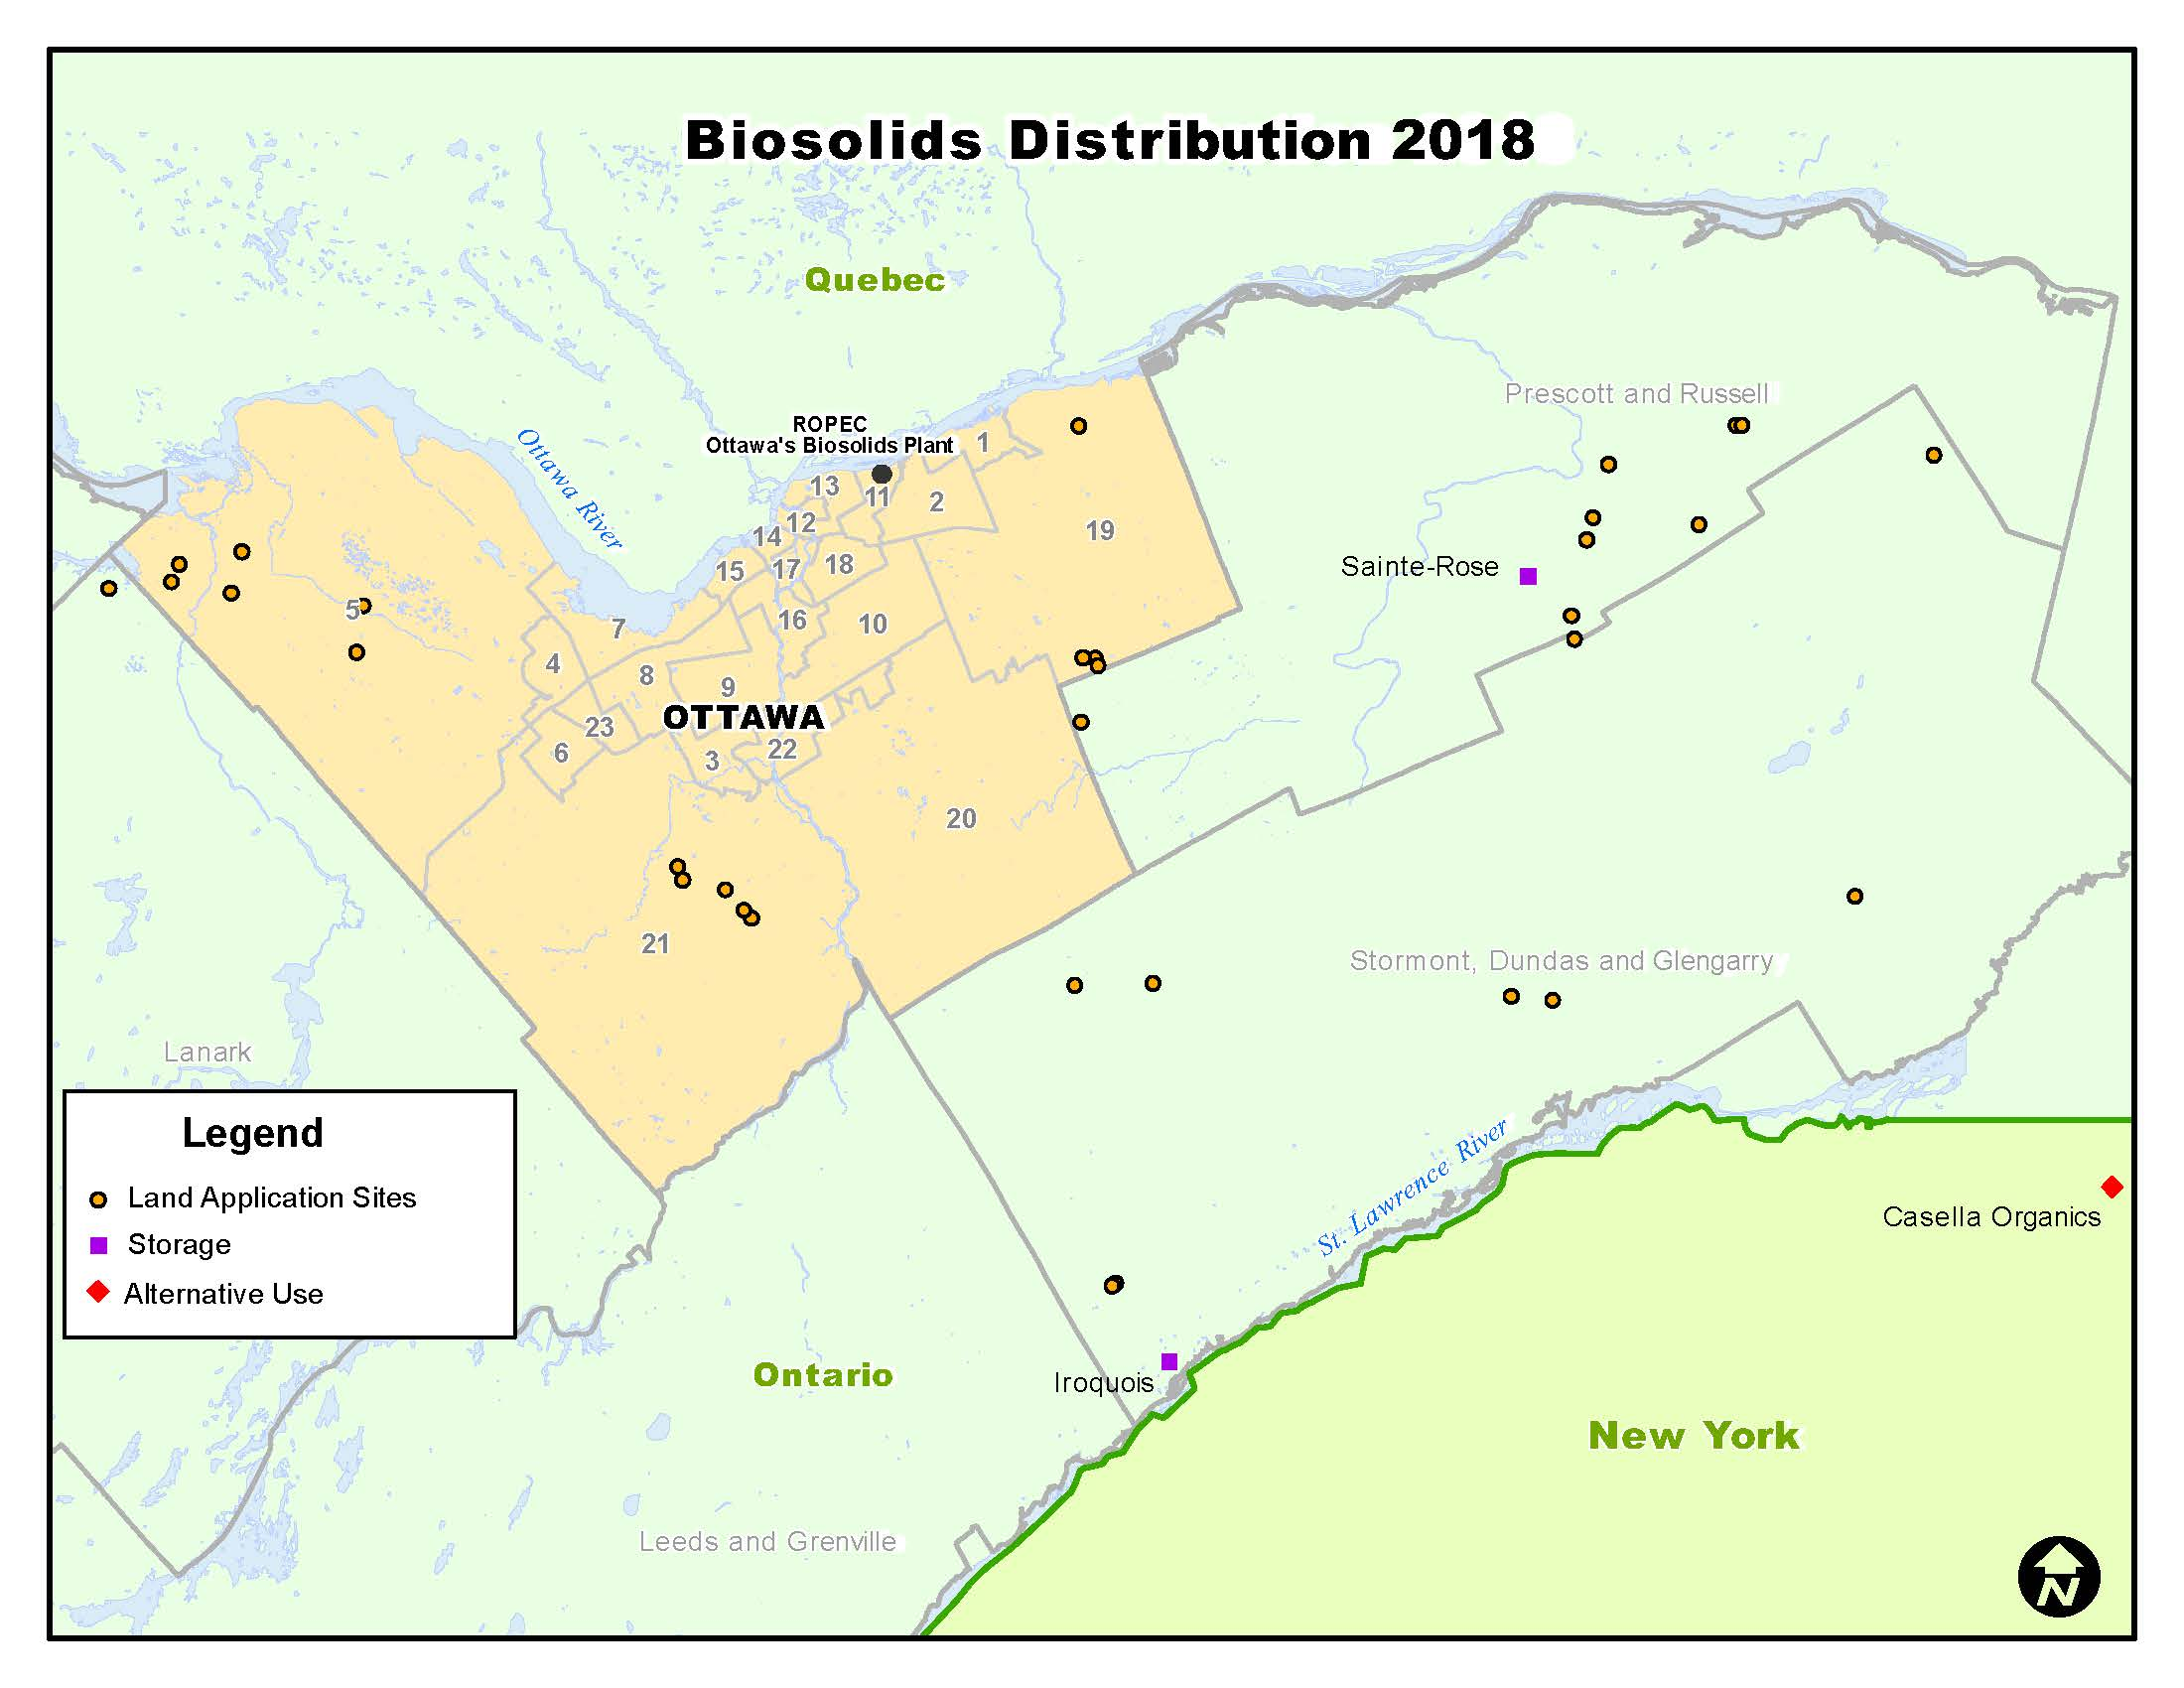 Map showing biosolids distribution in 2018